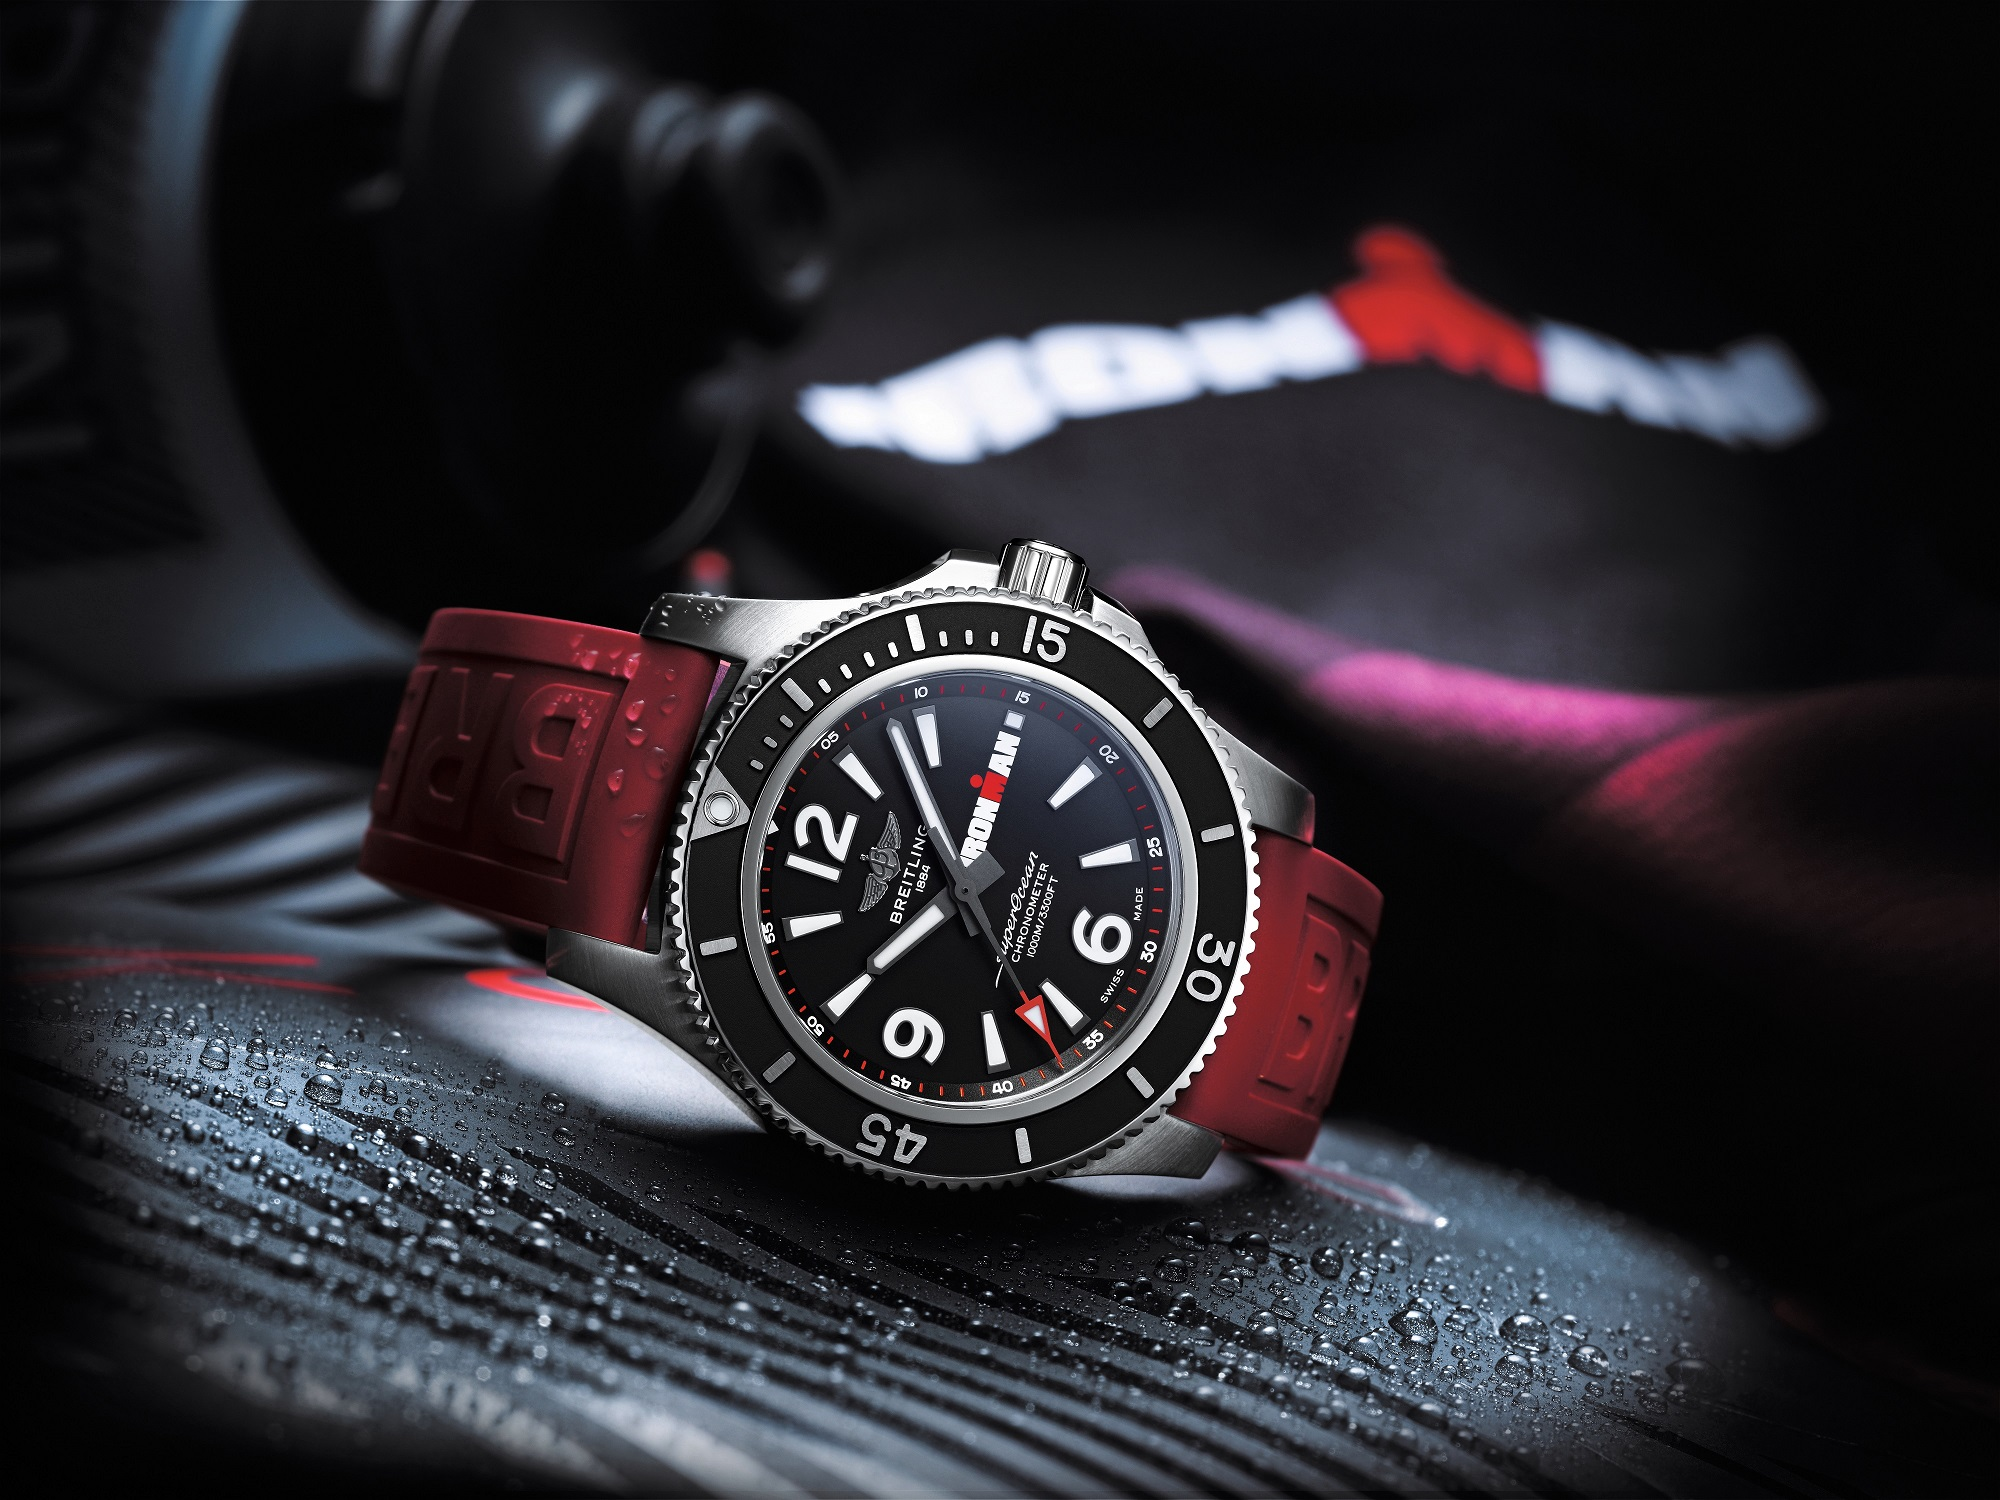 Breitling has teamed up with Ironman championships on its latest watch creation